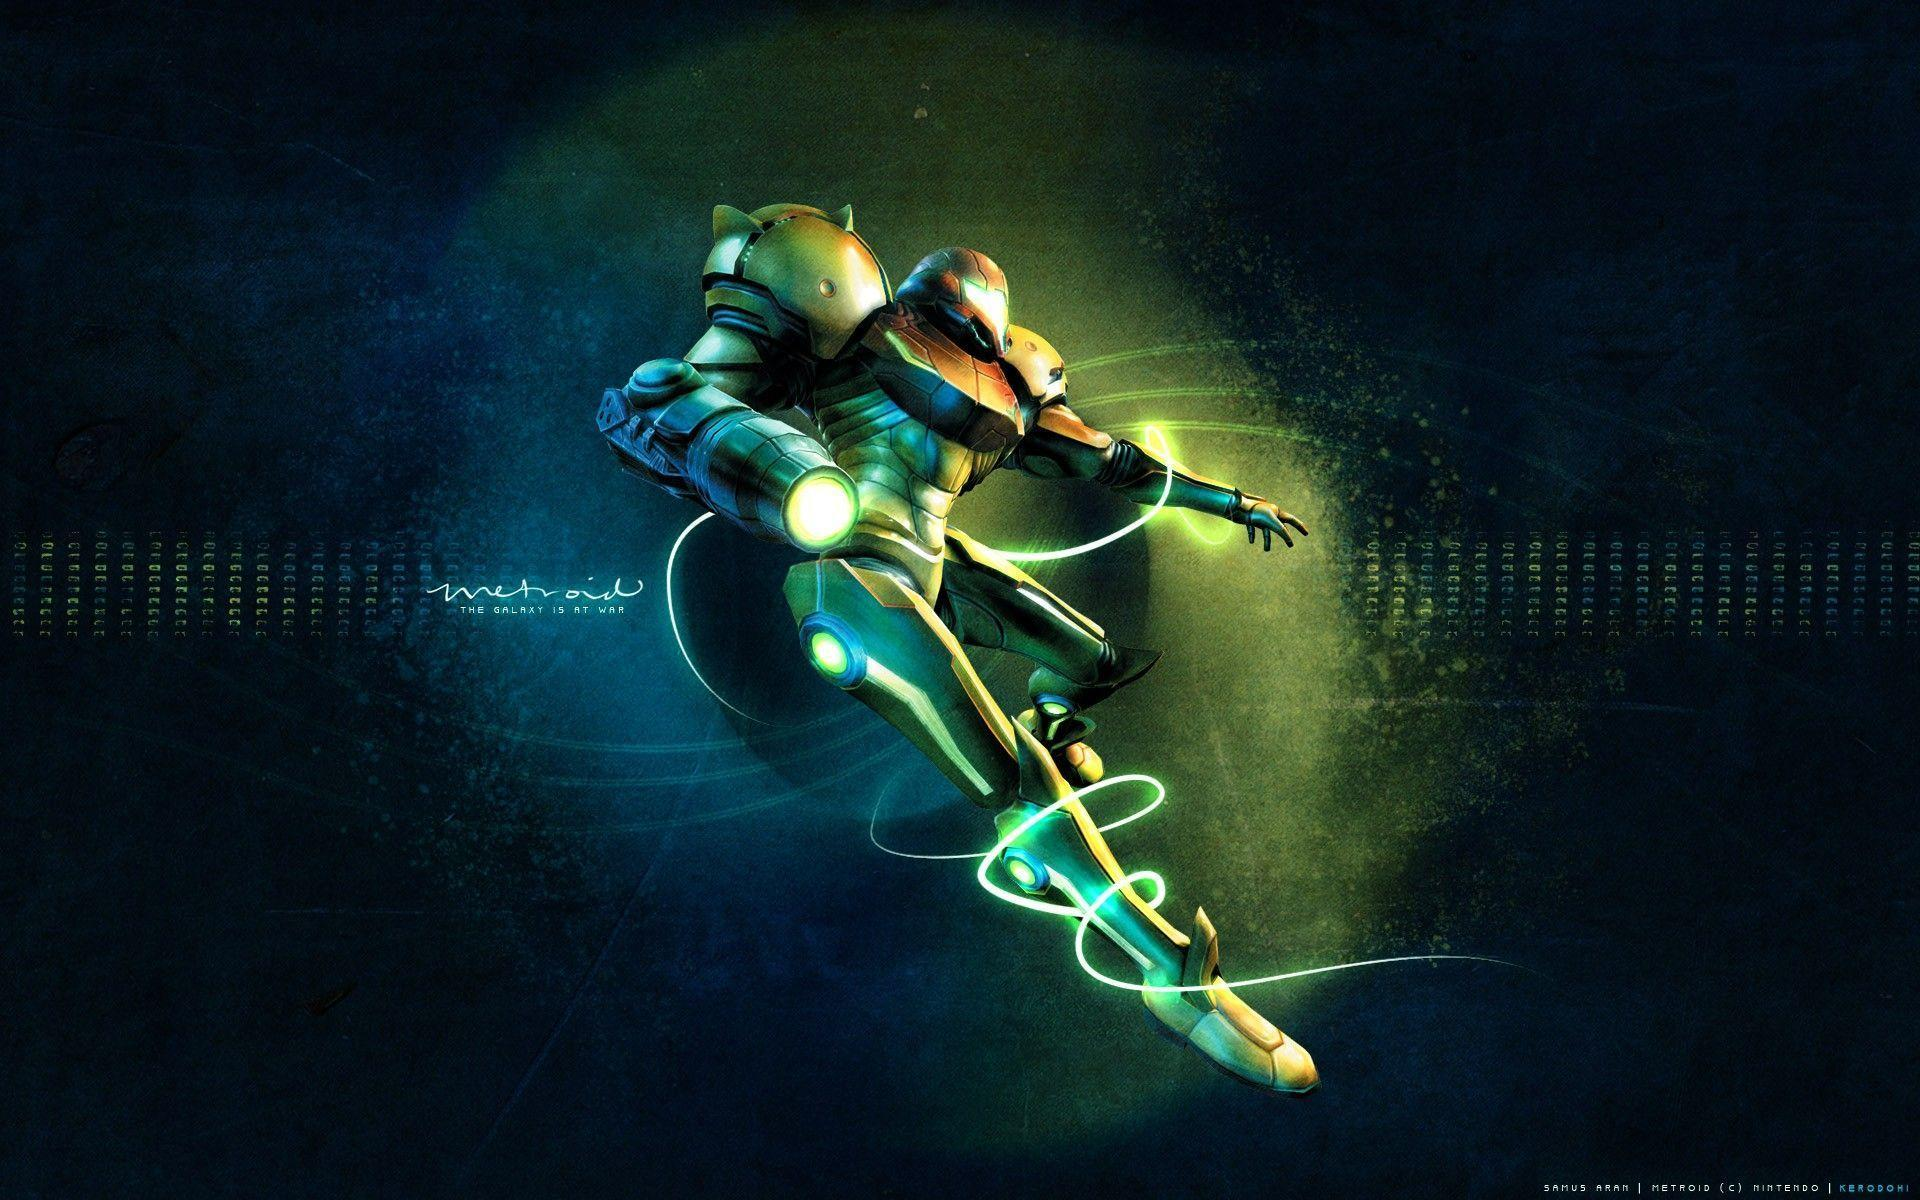 Wallpapers For > Metroid Prime 2 Wallpapers